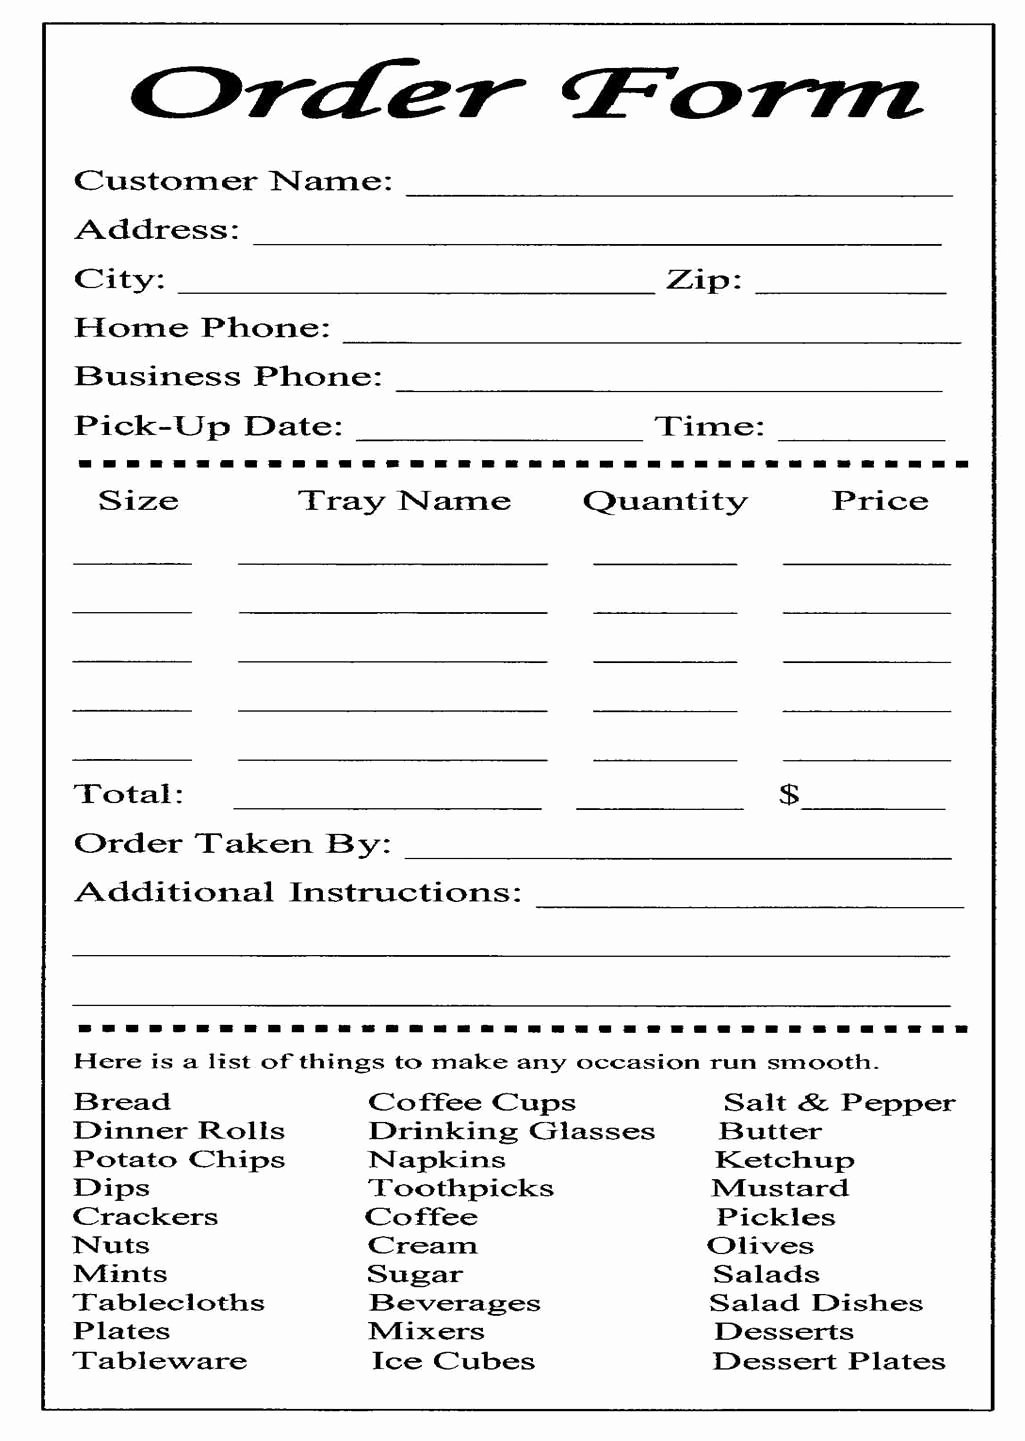 Catering order form Template Elegant Cake Ball order form Templates Free